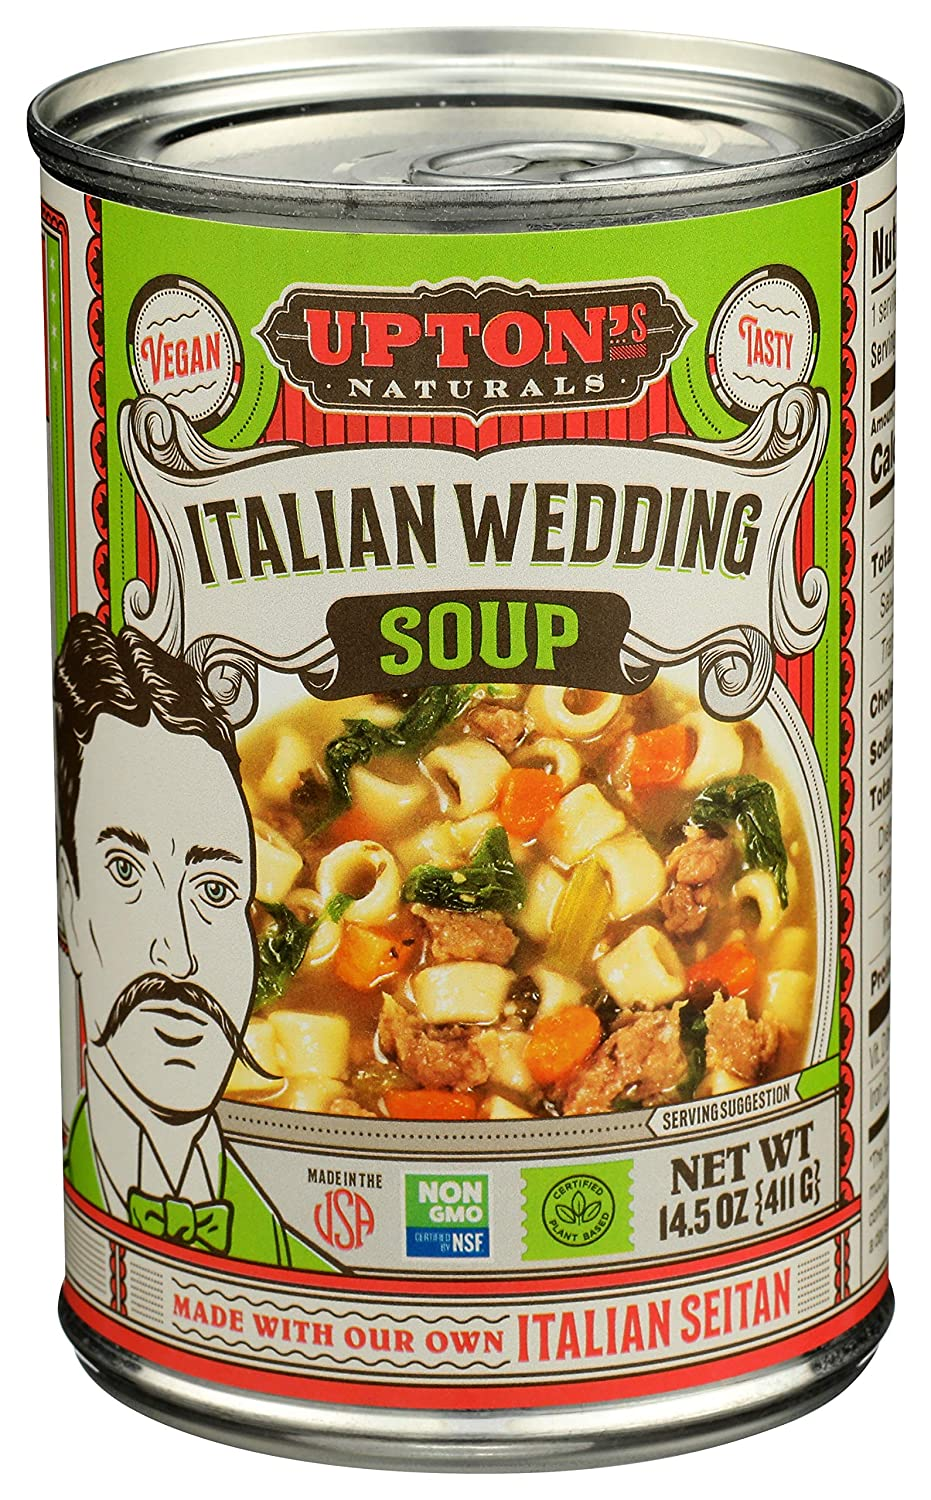 Upton's Naturals Italian Wedding 100% quality warranty! Today's only Soup 14.5oz case 8 of